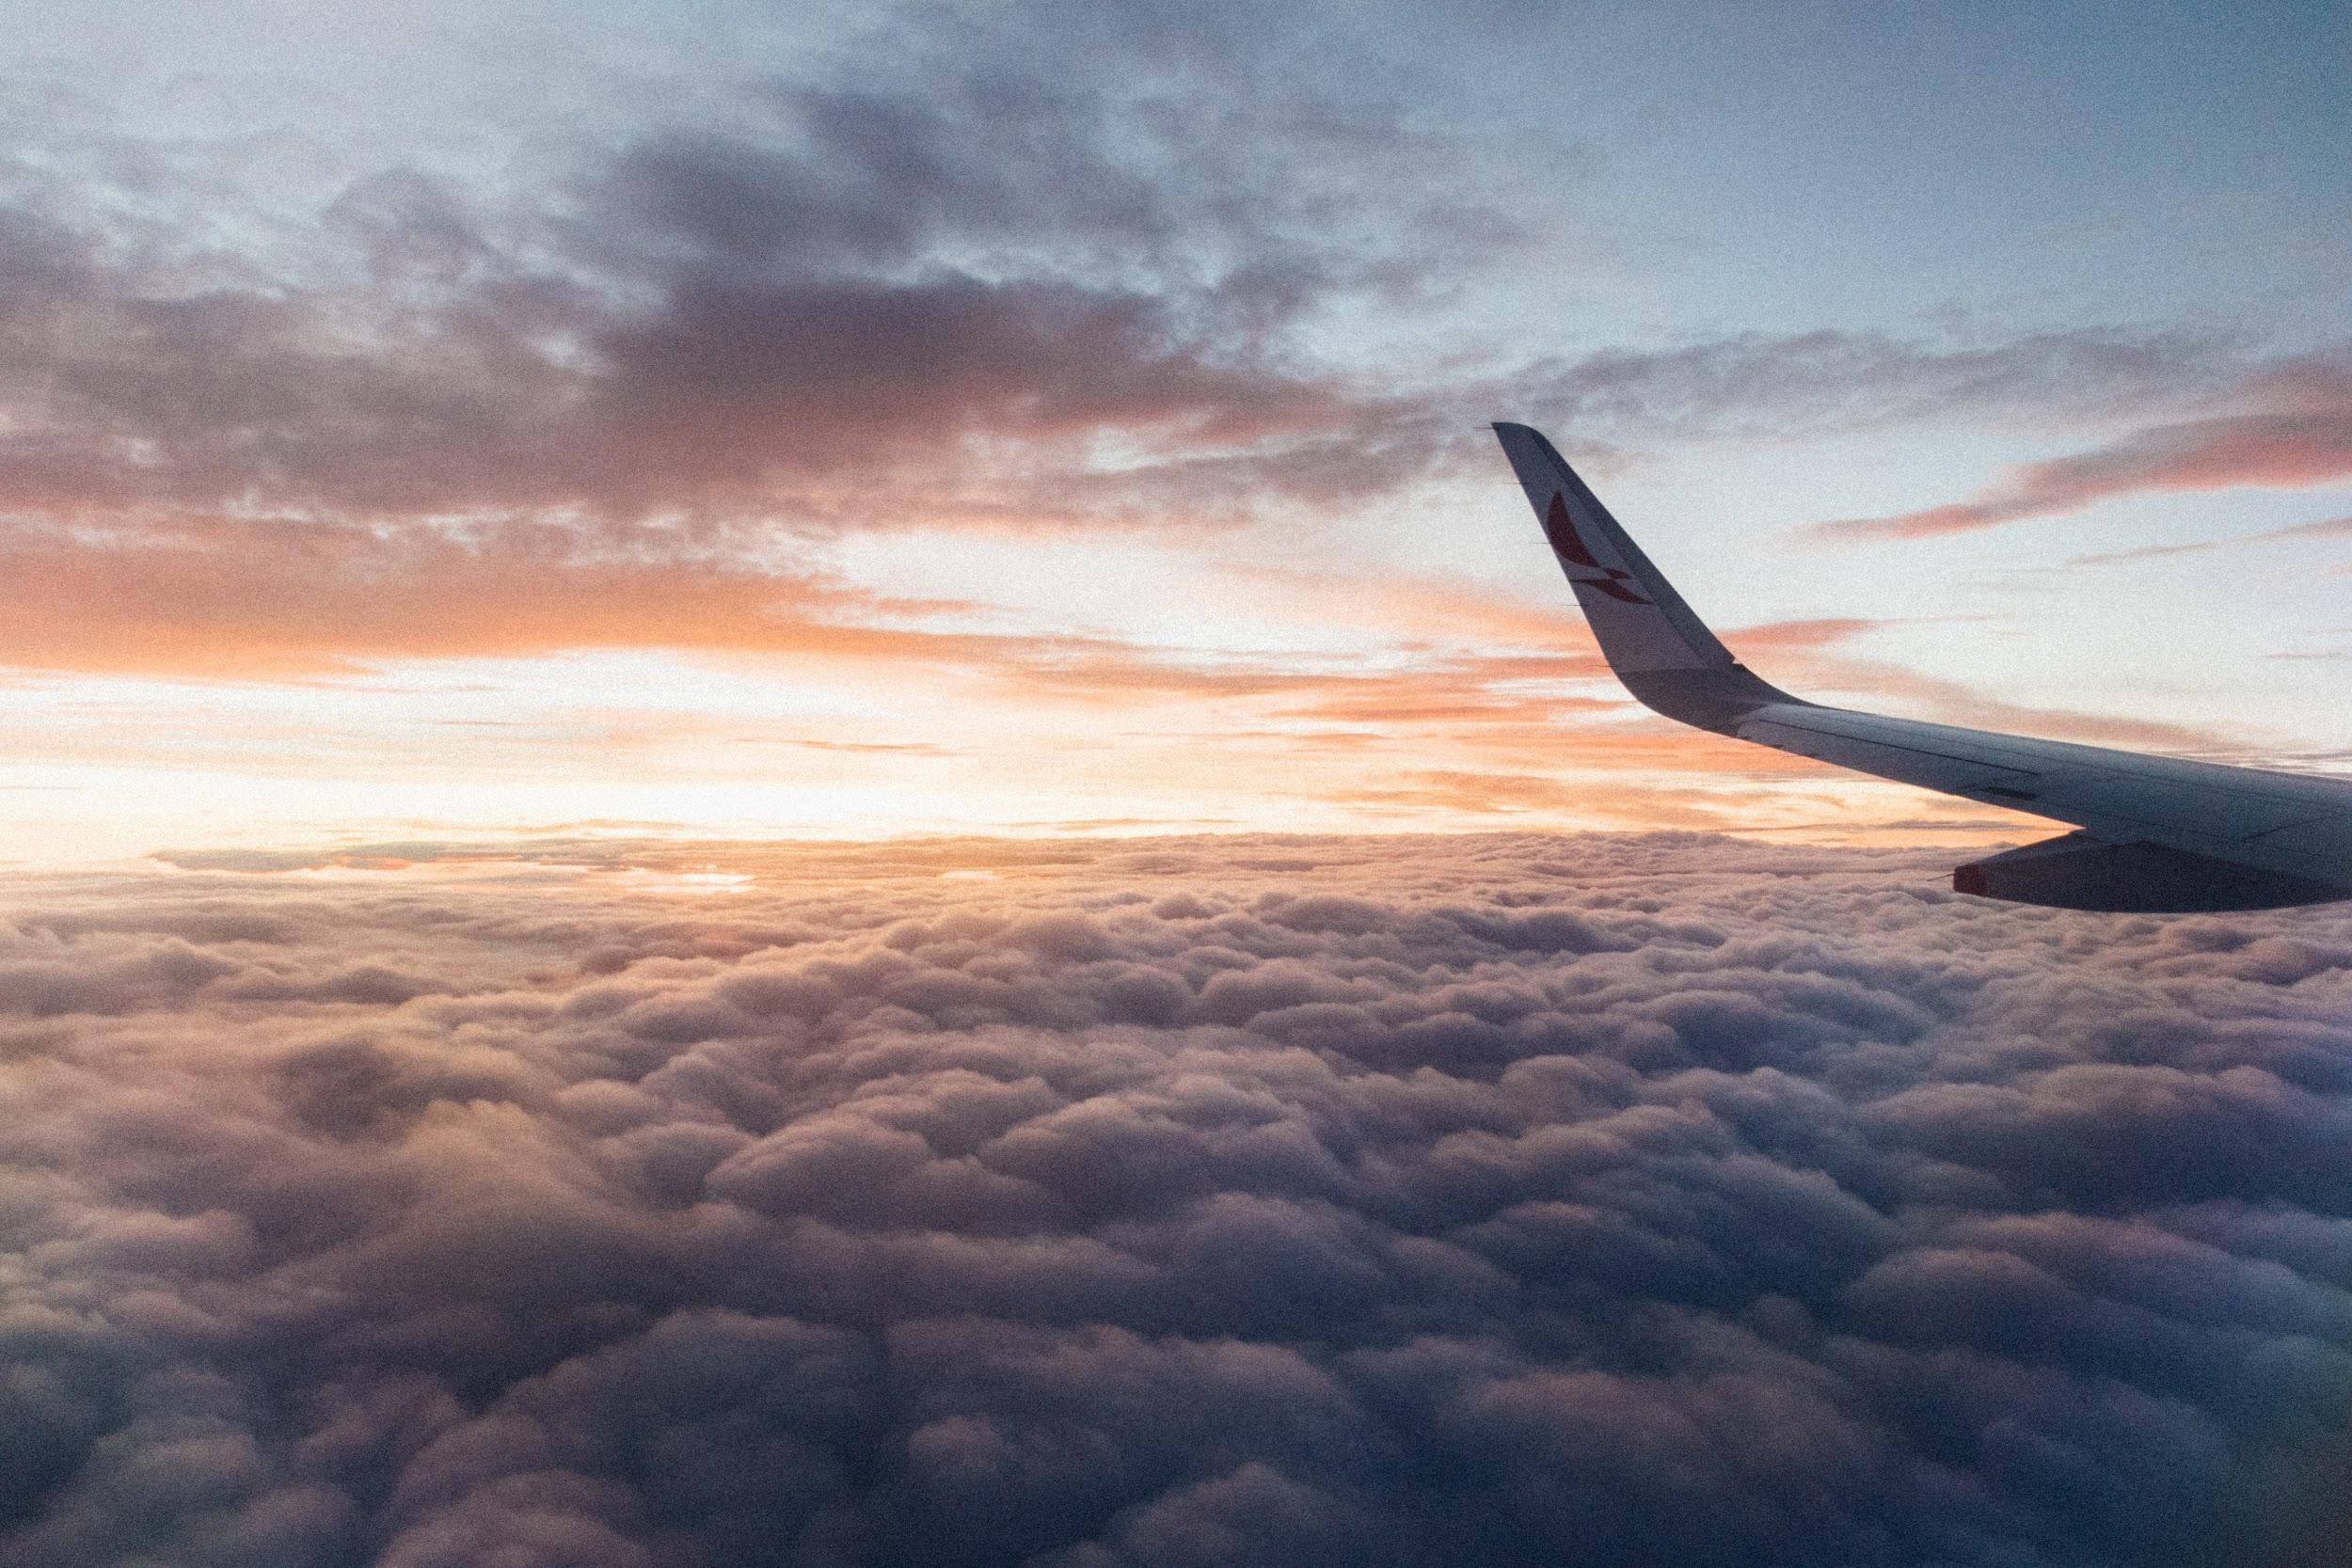 Aviation cybersecurity: Hurdles of staying secure on the ground and at 36,000 feet